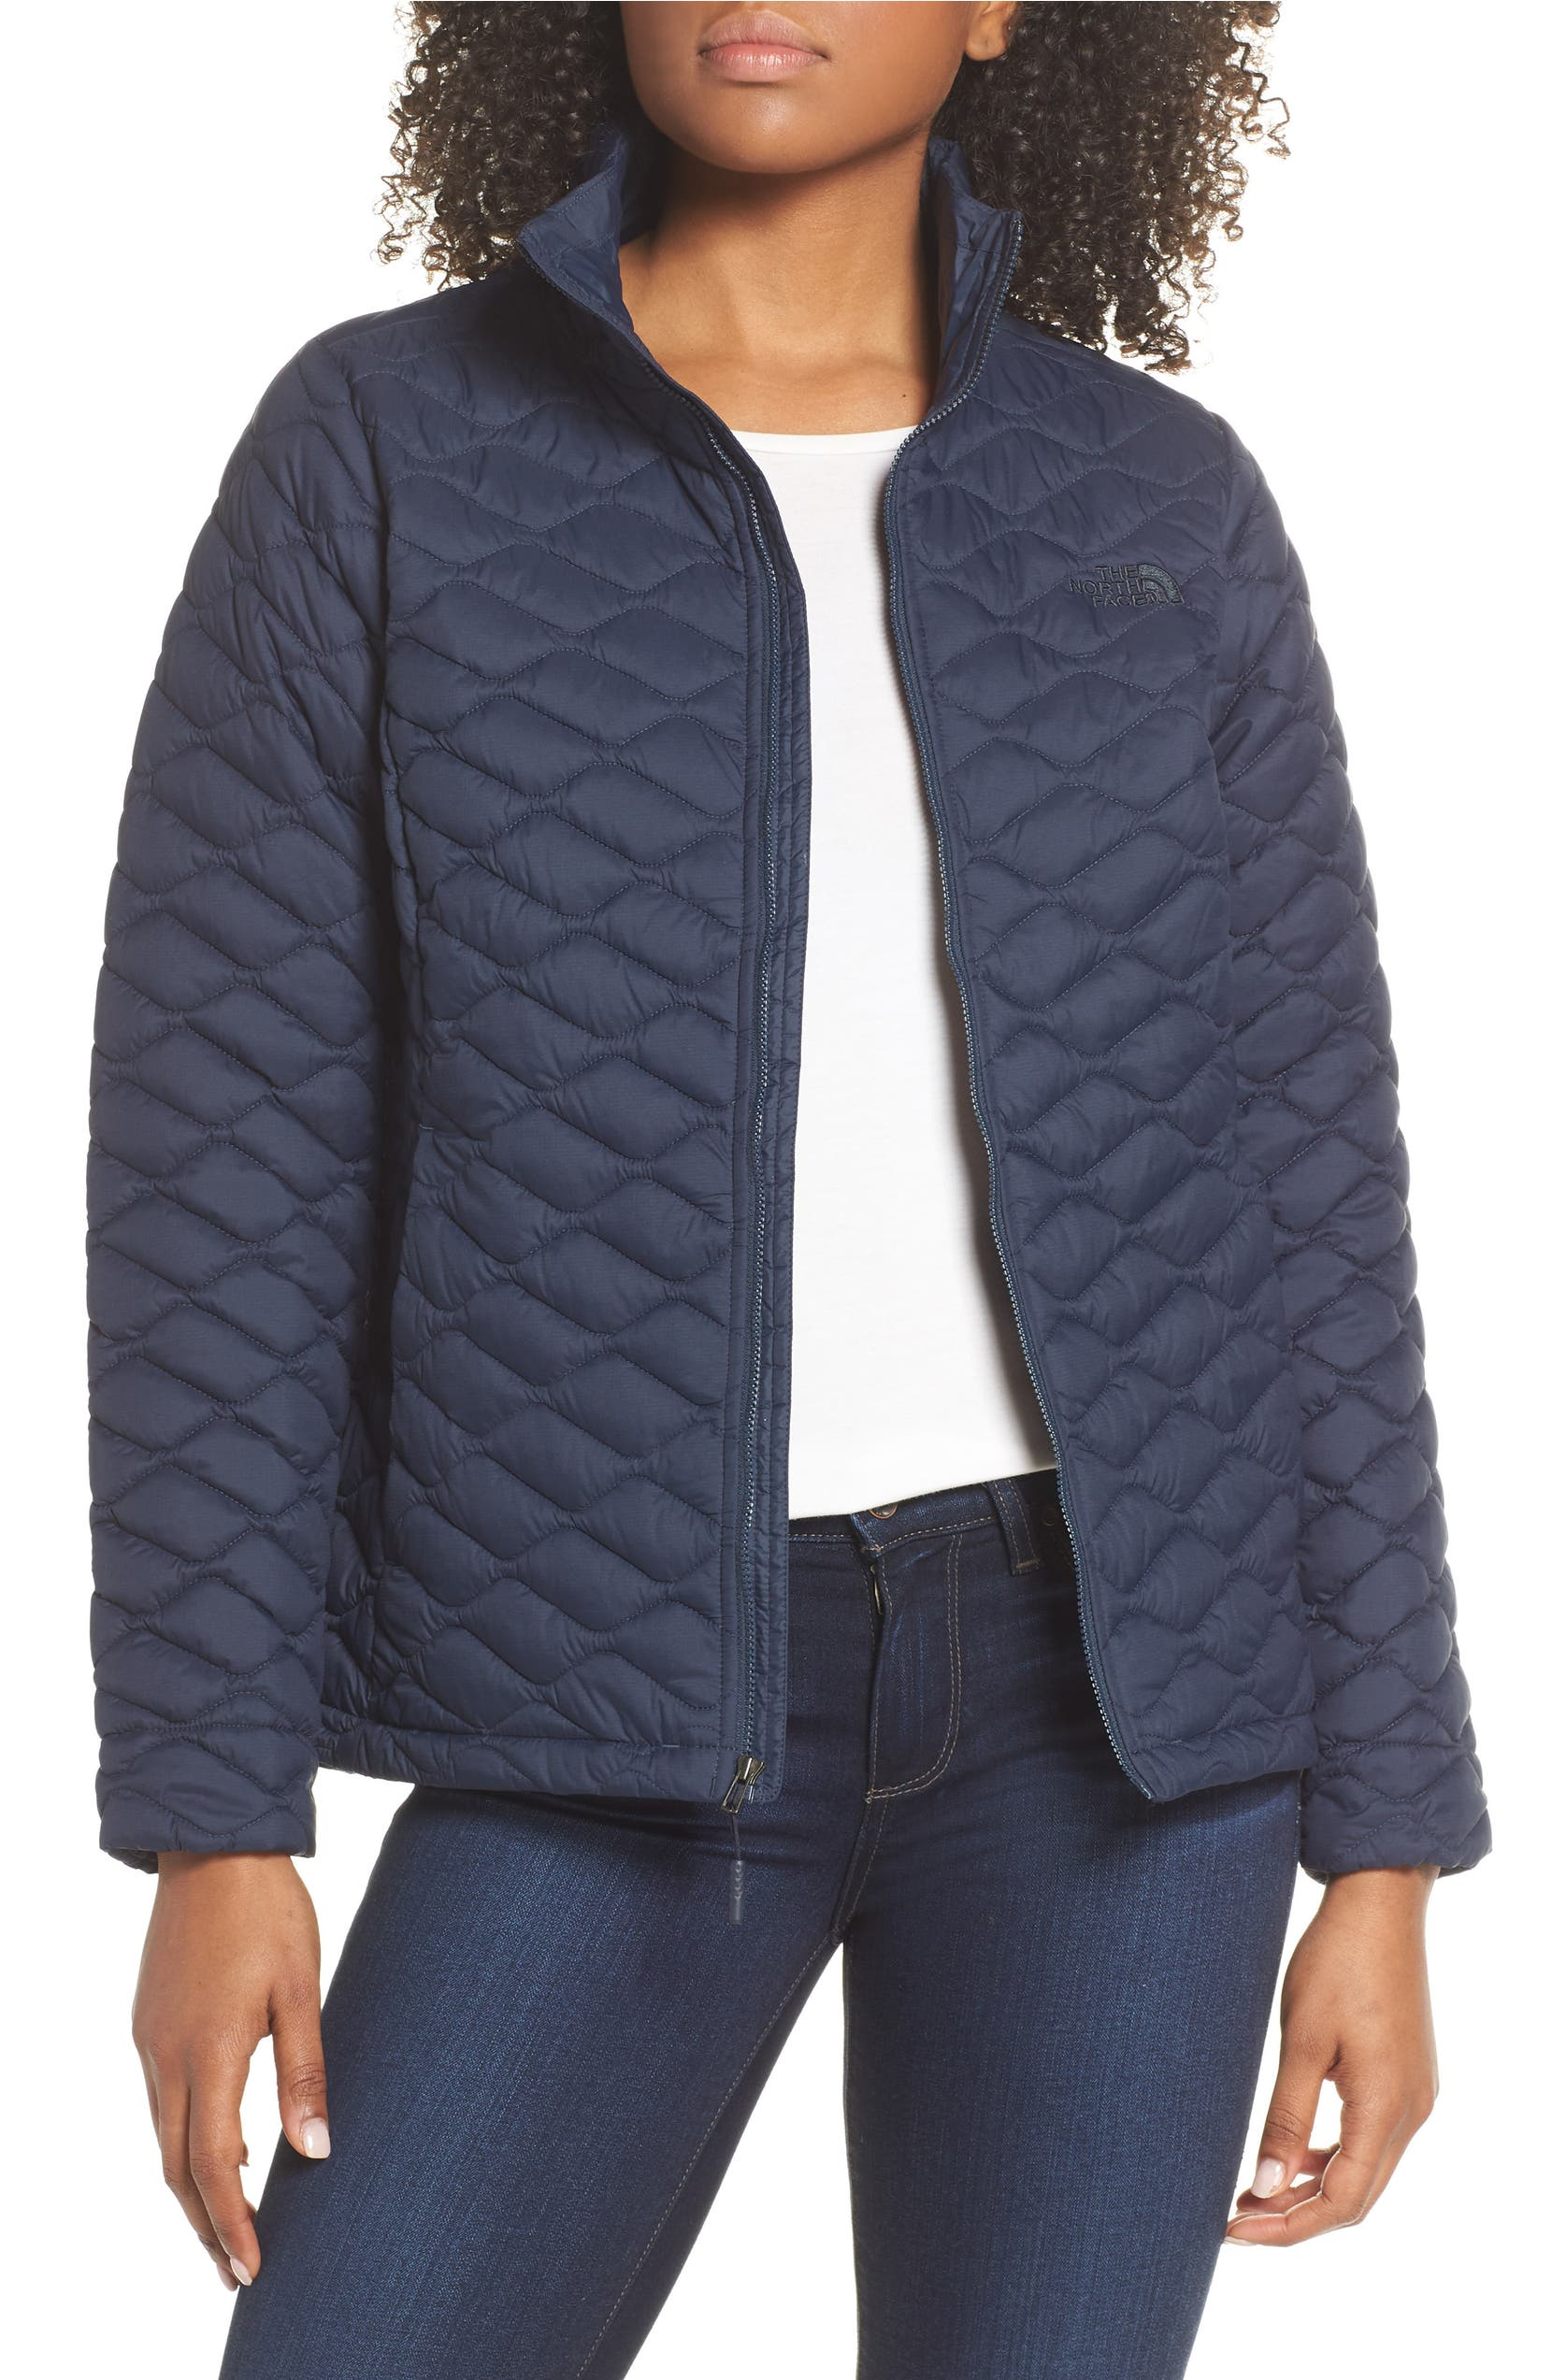 007878e8b5 The North Face ThermoBall™ Full Zip Jacket